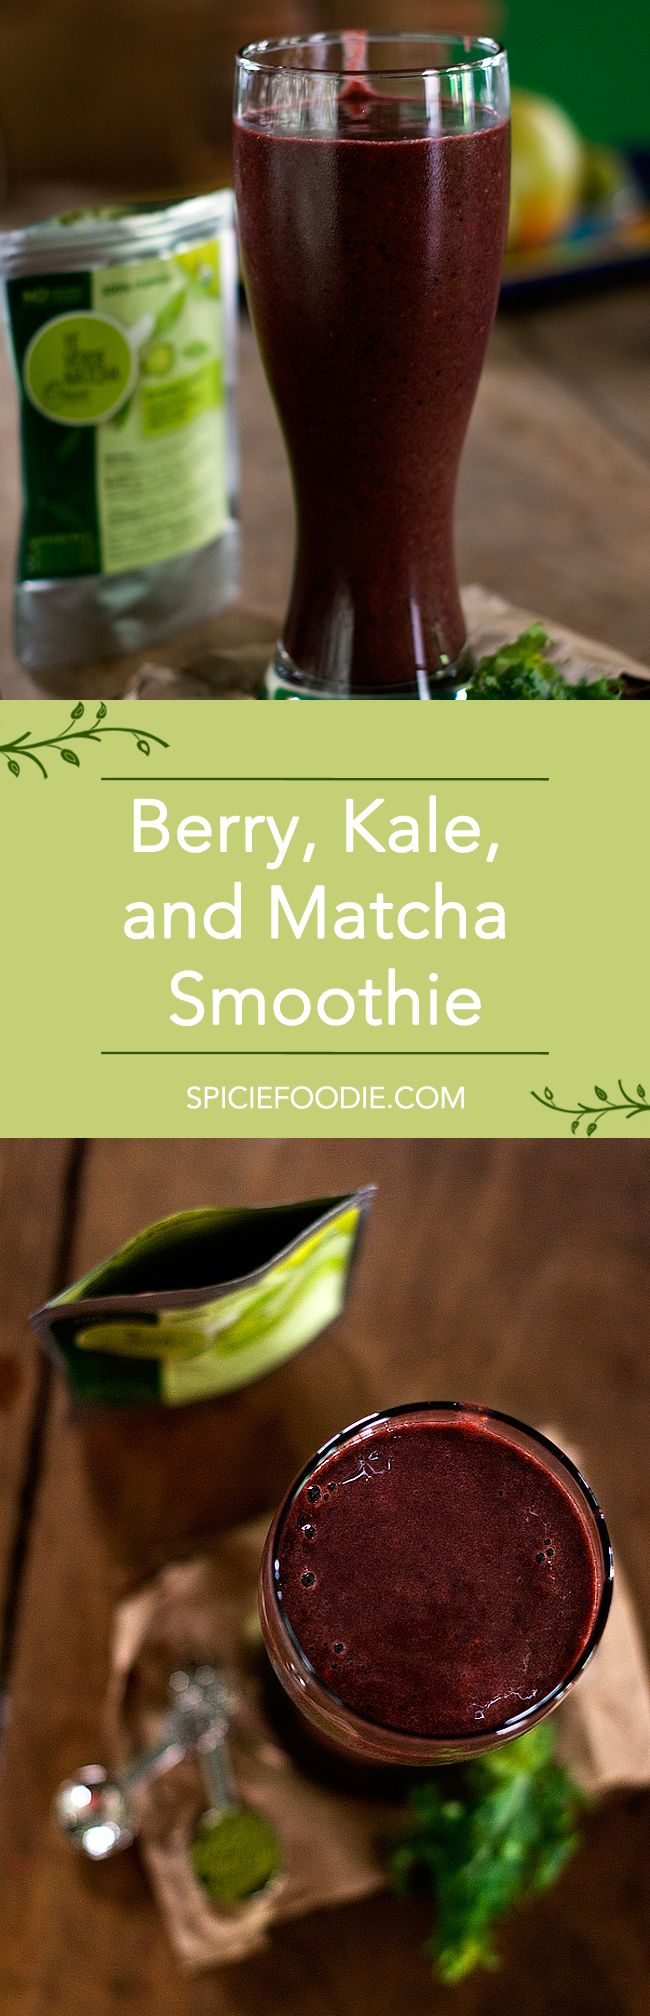 Berry, Kale, and Matcha smoothie  5 cup of filtered water 1.5 cups of frozen berries 1 cup of roughly chopped kale (stems removed) 1.5 teaspoons of matcha powder Sweetener, to taste